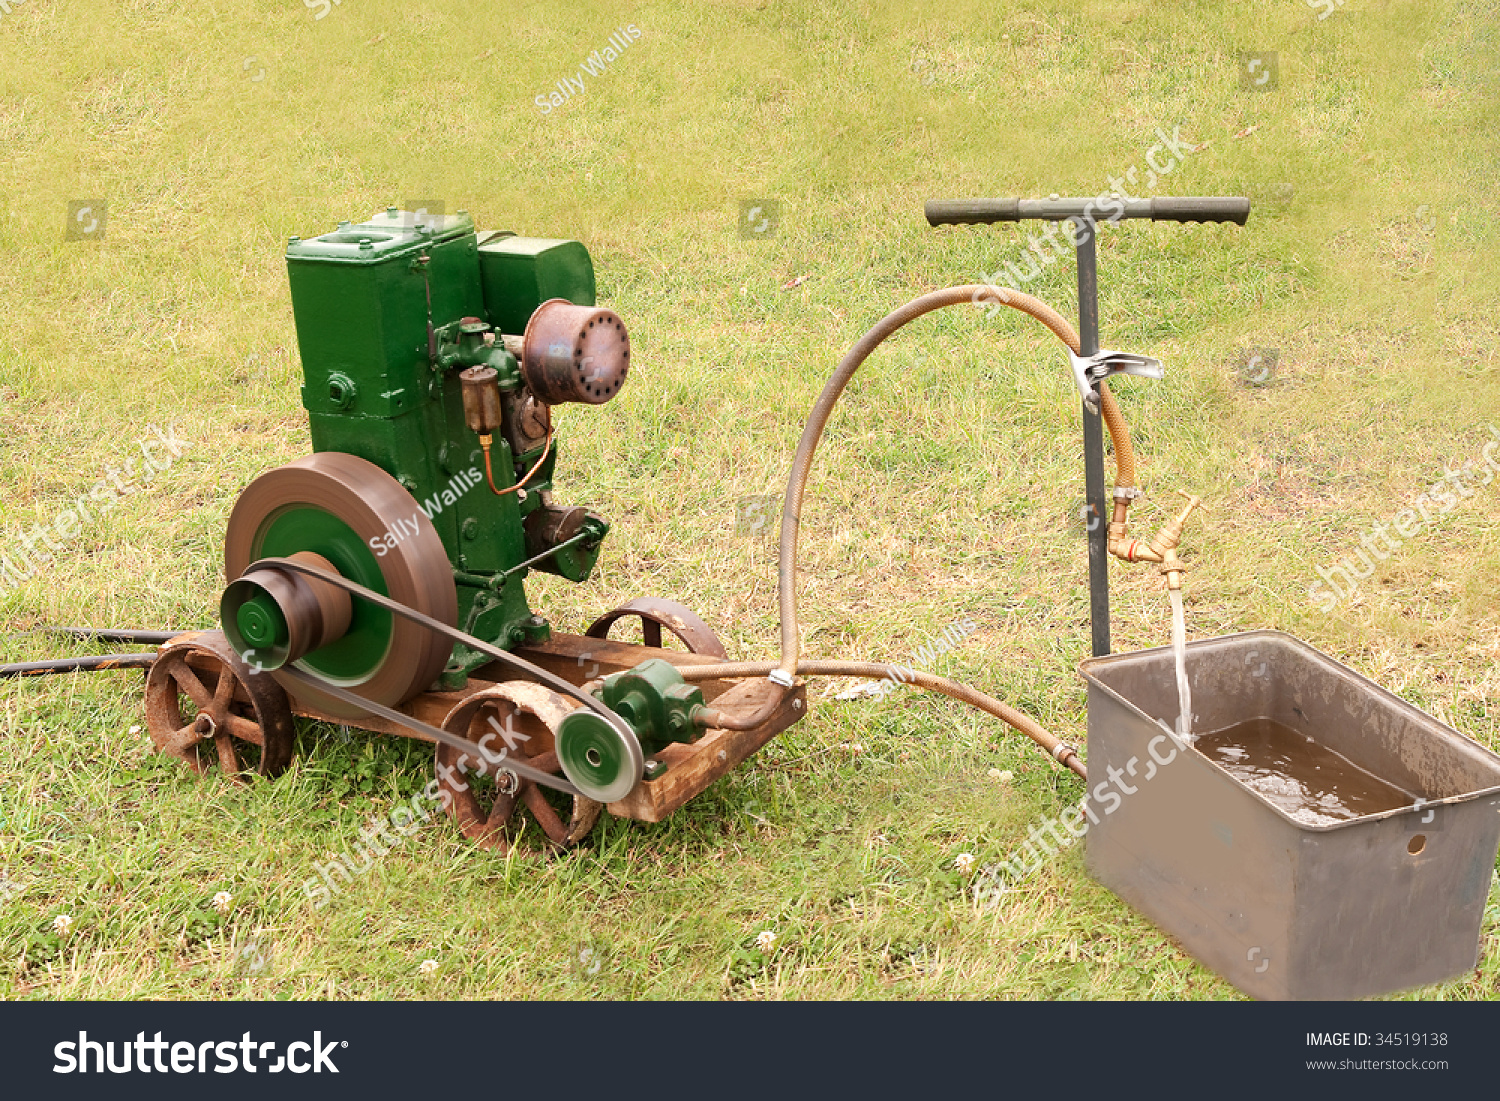 Ancient Belt Driven Motor Pump Filling A Tank With Water